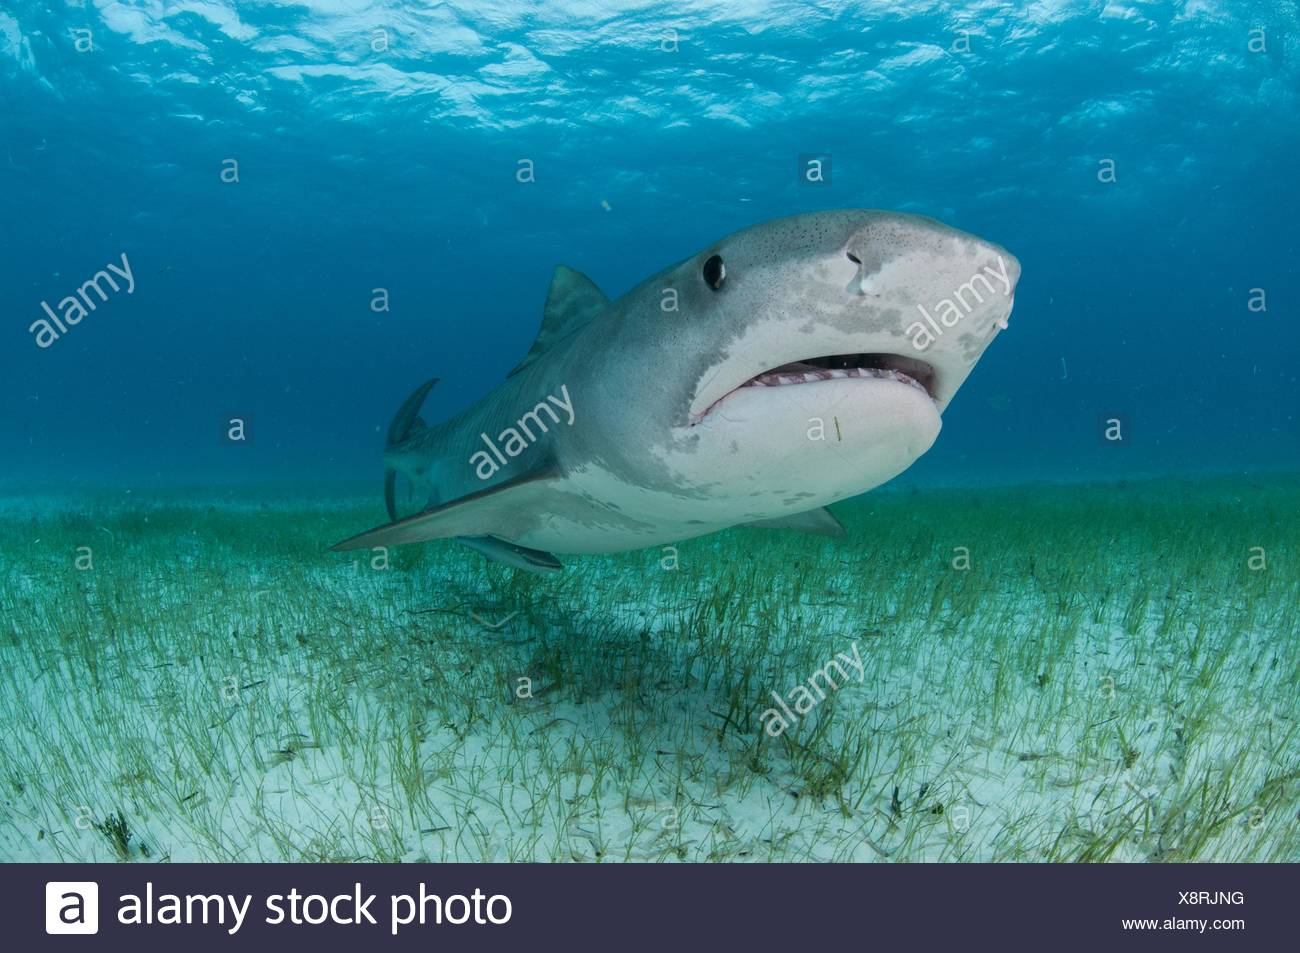 Low angle underwater view of tiger shark swimming near seagrass covered seabed, Tiger Beach, Bahamas - Stock Image